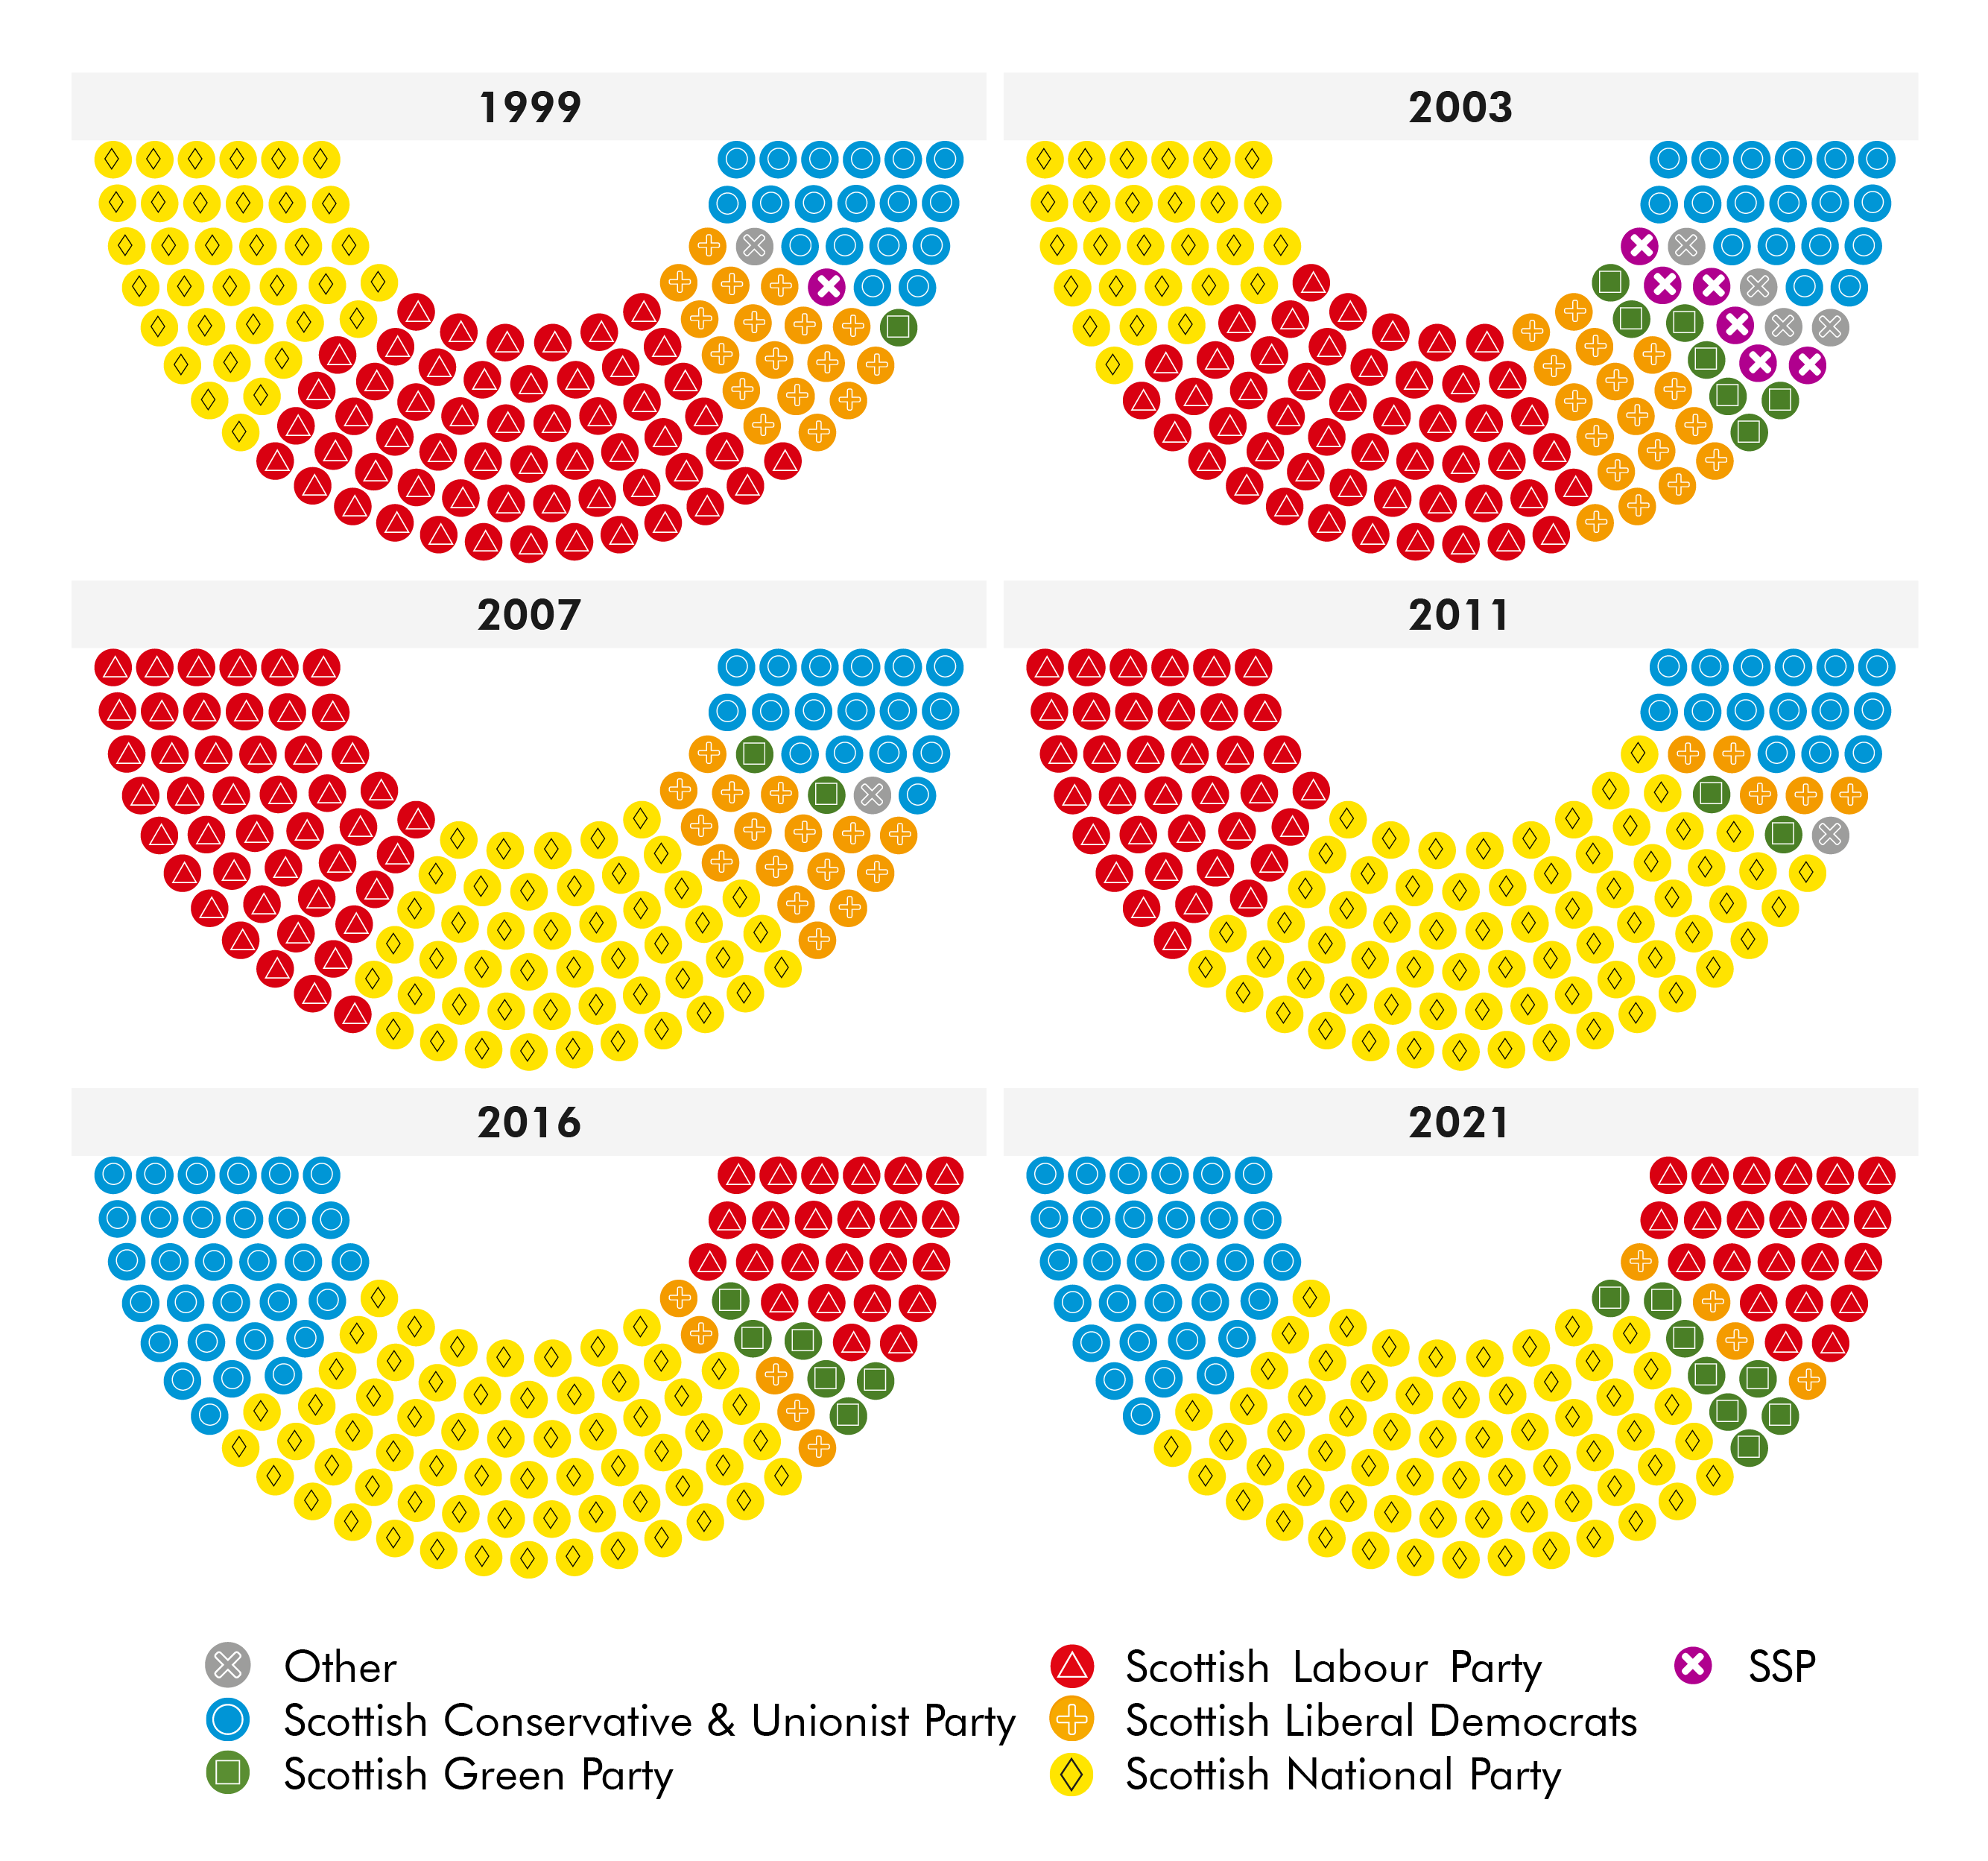 In 1999 and 2003 Labour won the most seats. Since then the SNP have had the most seats, wining a majority in 2011.